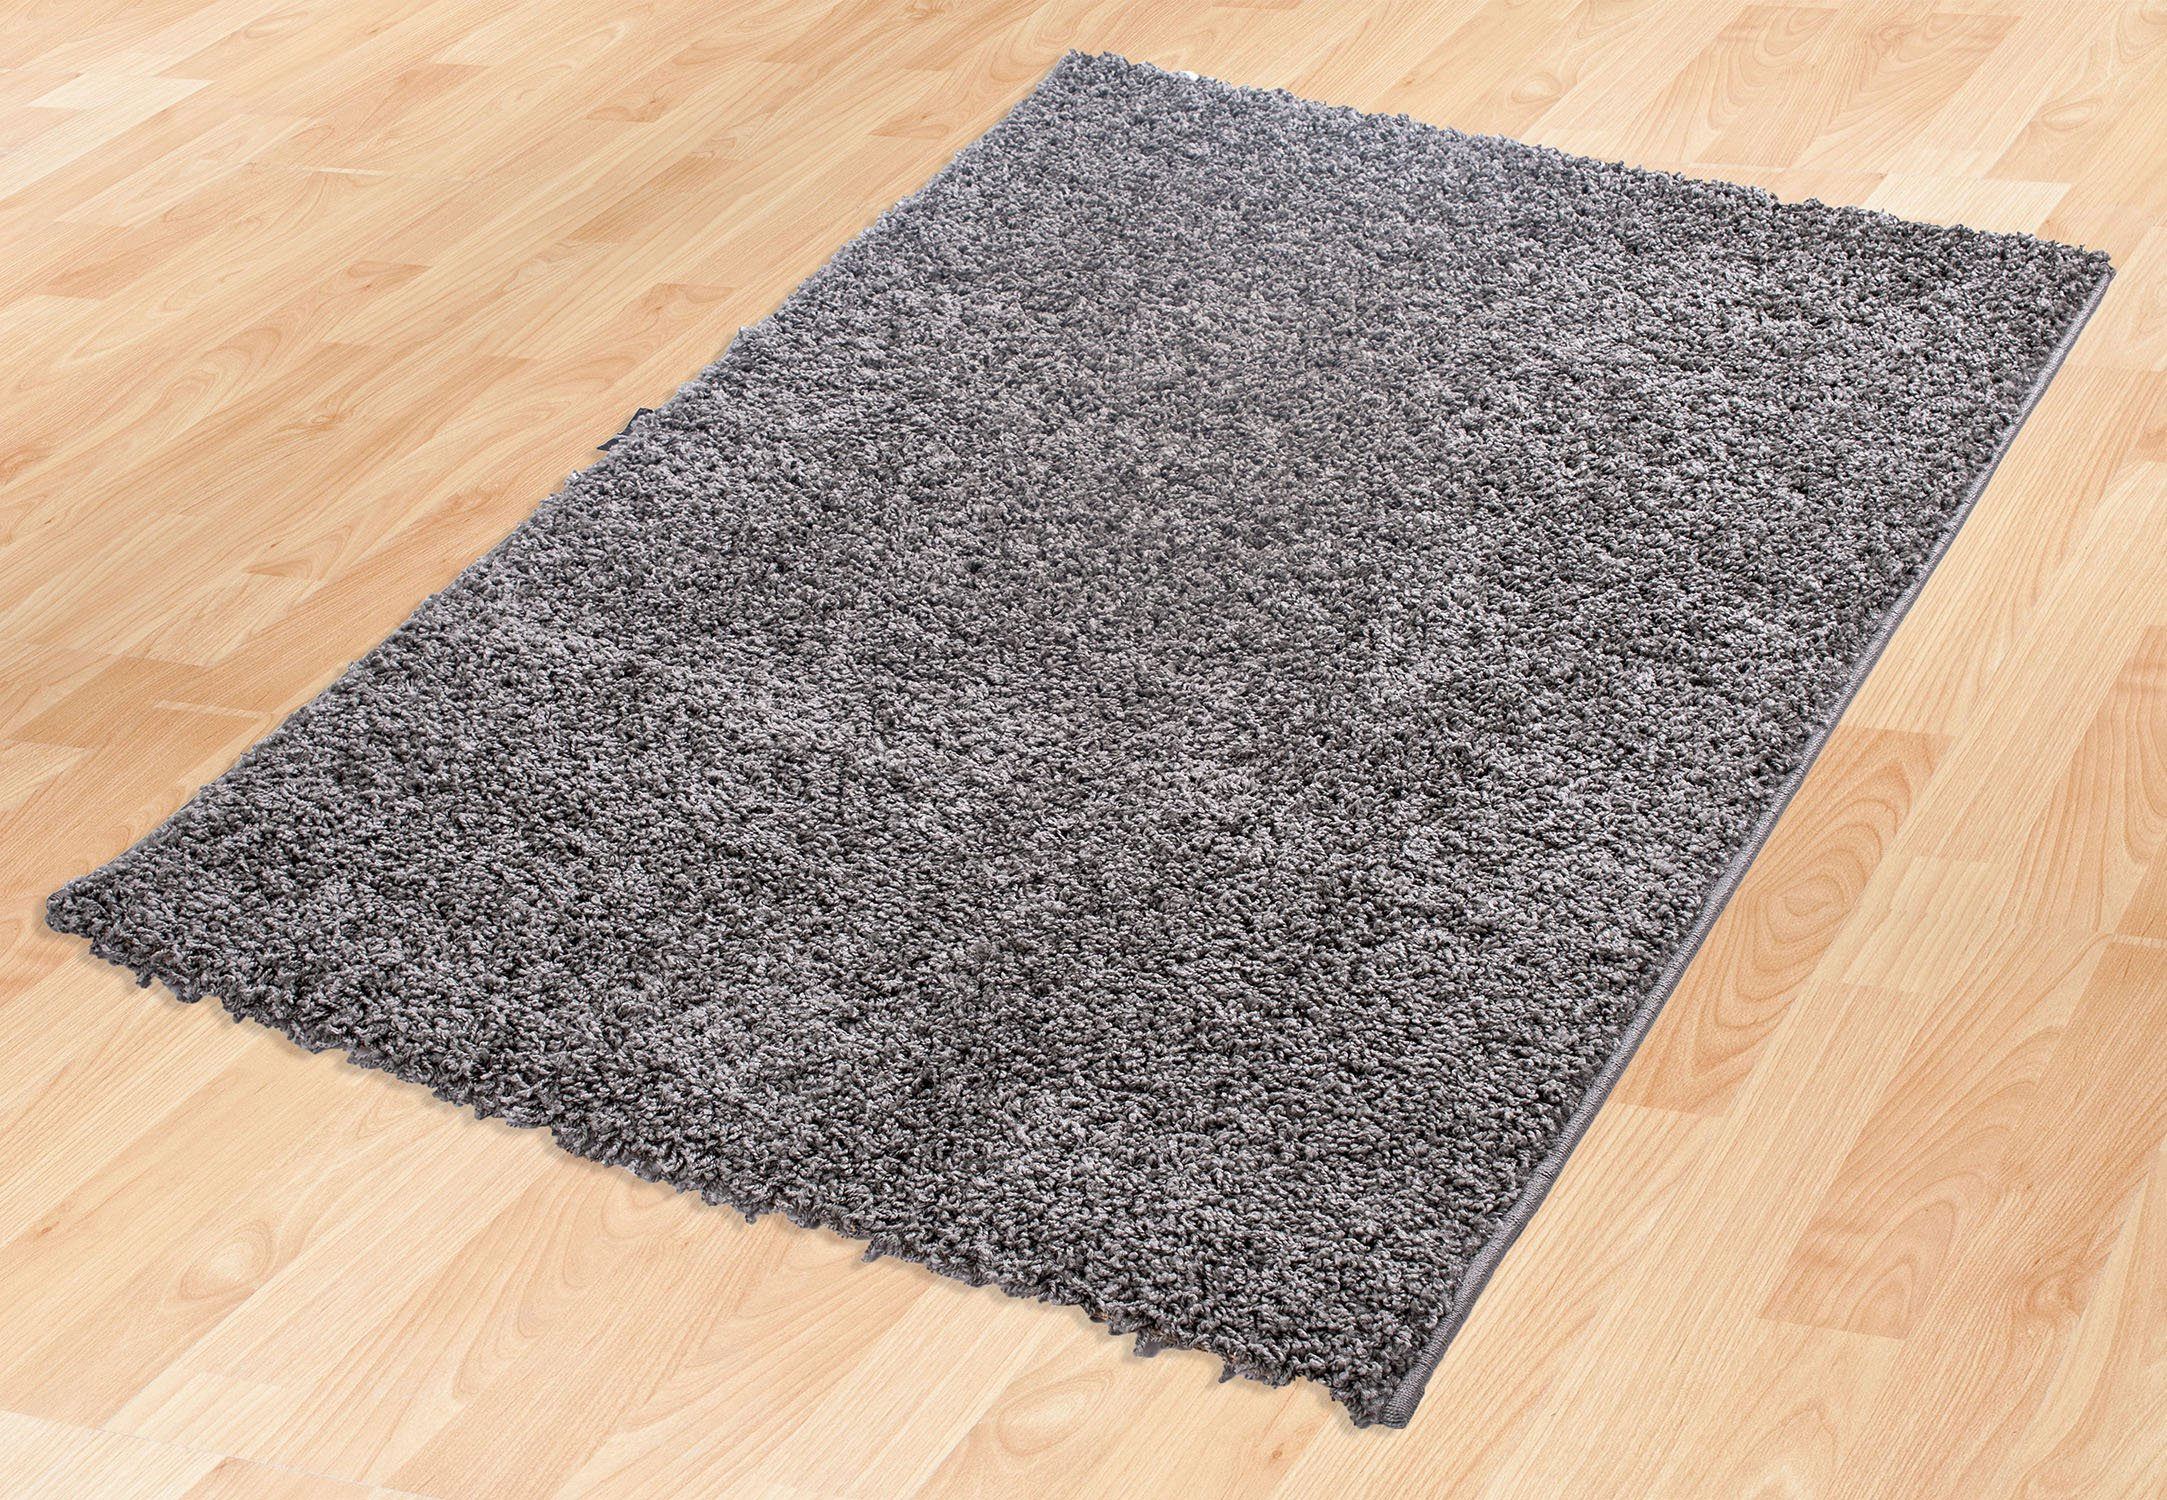 Ottomanson Soft Cozy Color Solid Shag Area Rug Contemporary Living and Bedroom Soft Shag Area Rug, Grey, 7'10'' L x 9'10'' W by Ottomanson (Image #2)